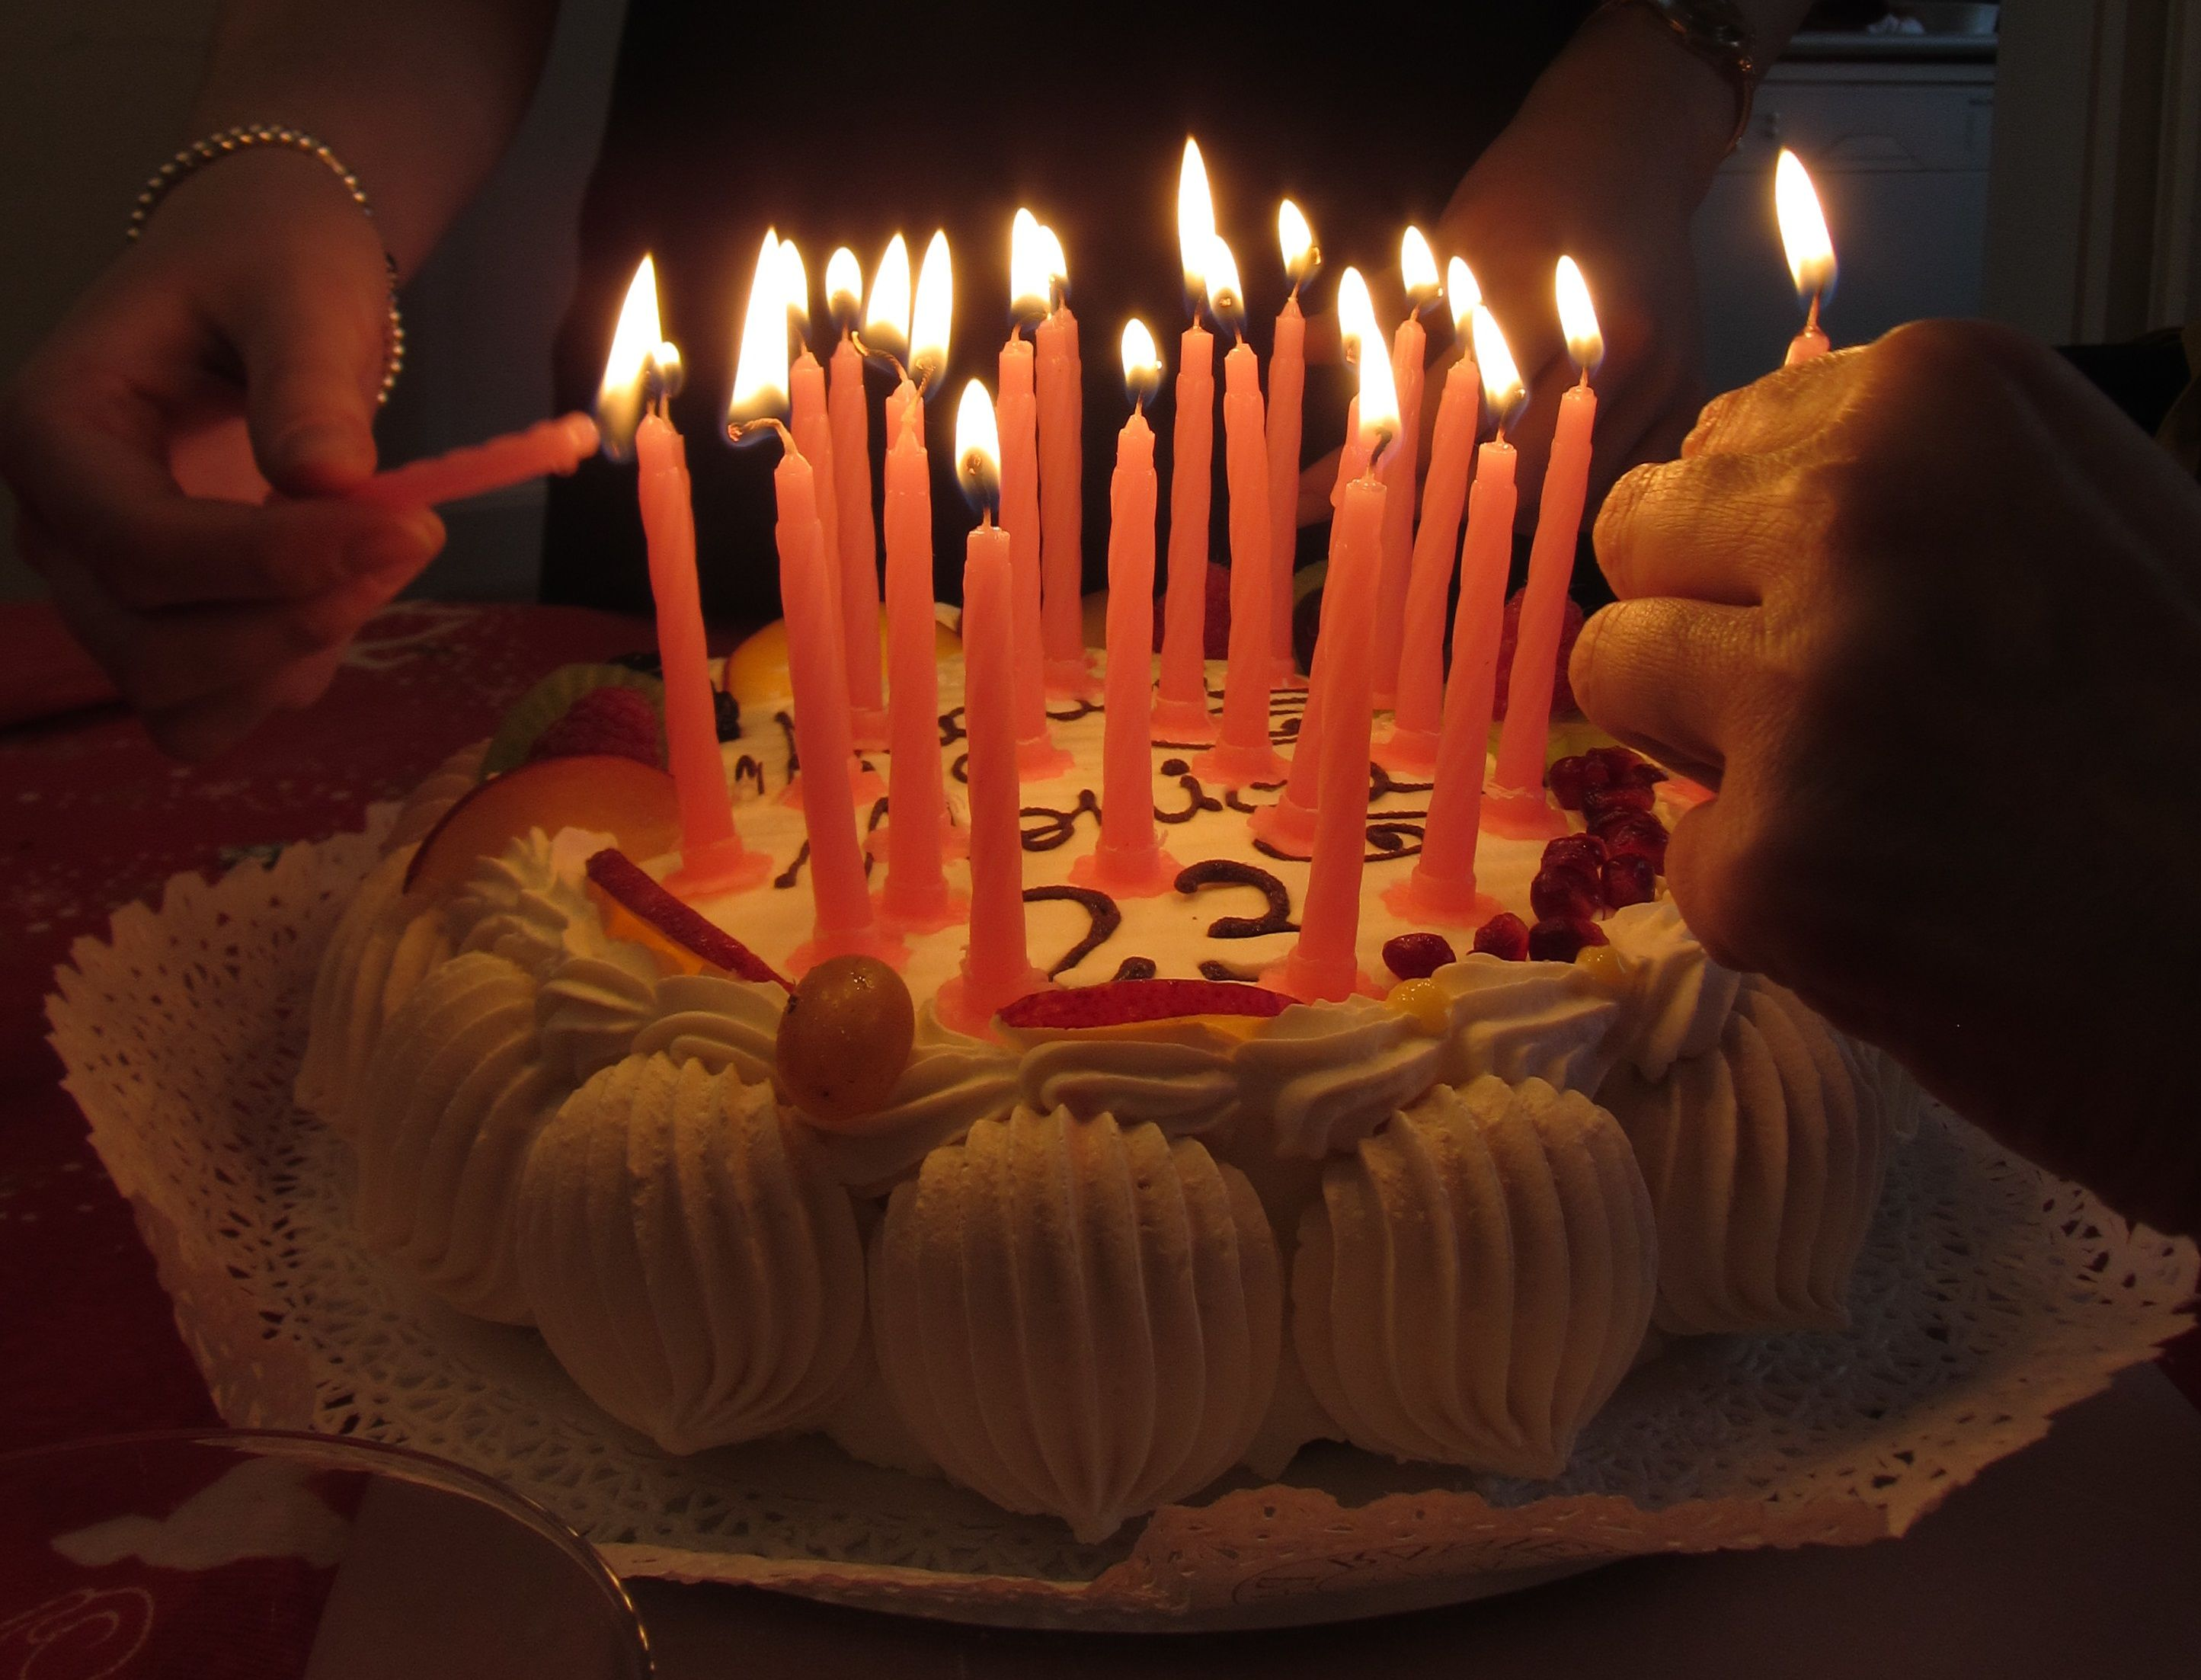 Phenomenal 25 Beautiful Photo Of Birthday Cake Candle With Images Funny Birthday Cards Online Inifofree Goldxyz